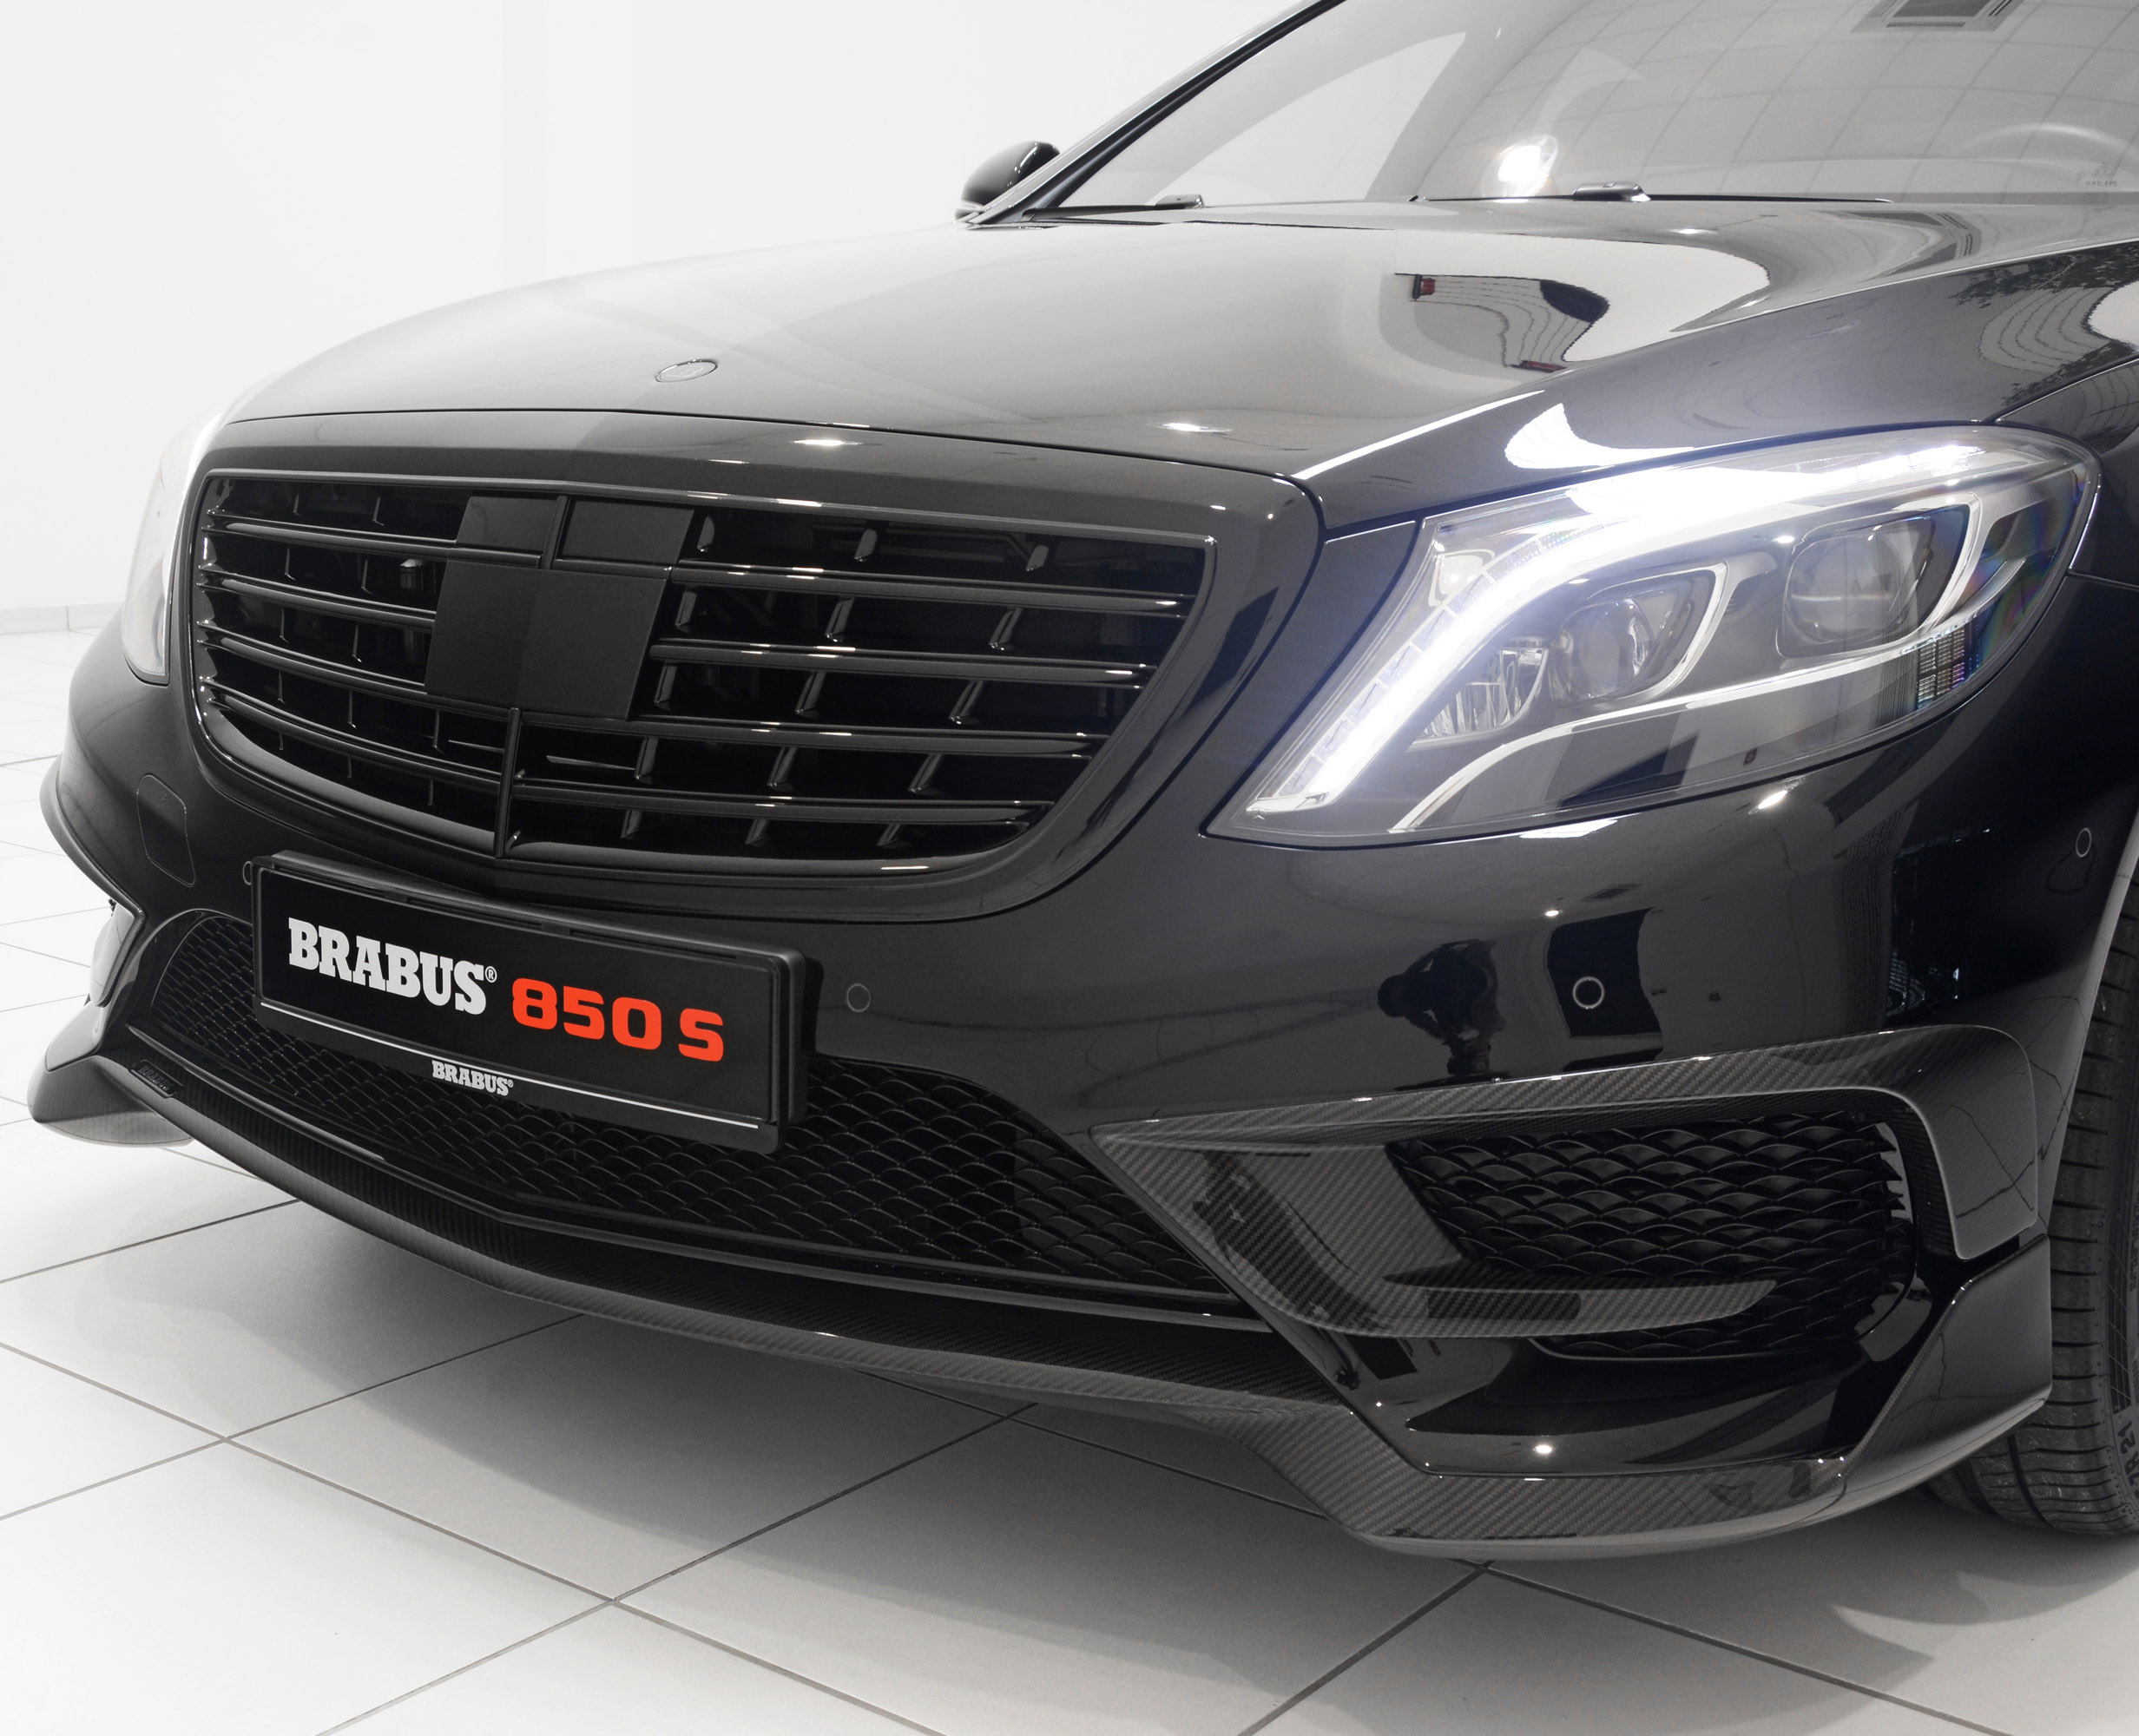 Luxury Car Interior Wallpapers Brabus 850 S Based On 2014 Mercedes Benz S 63 Amg